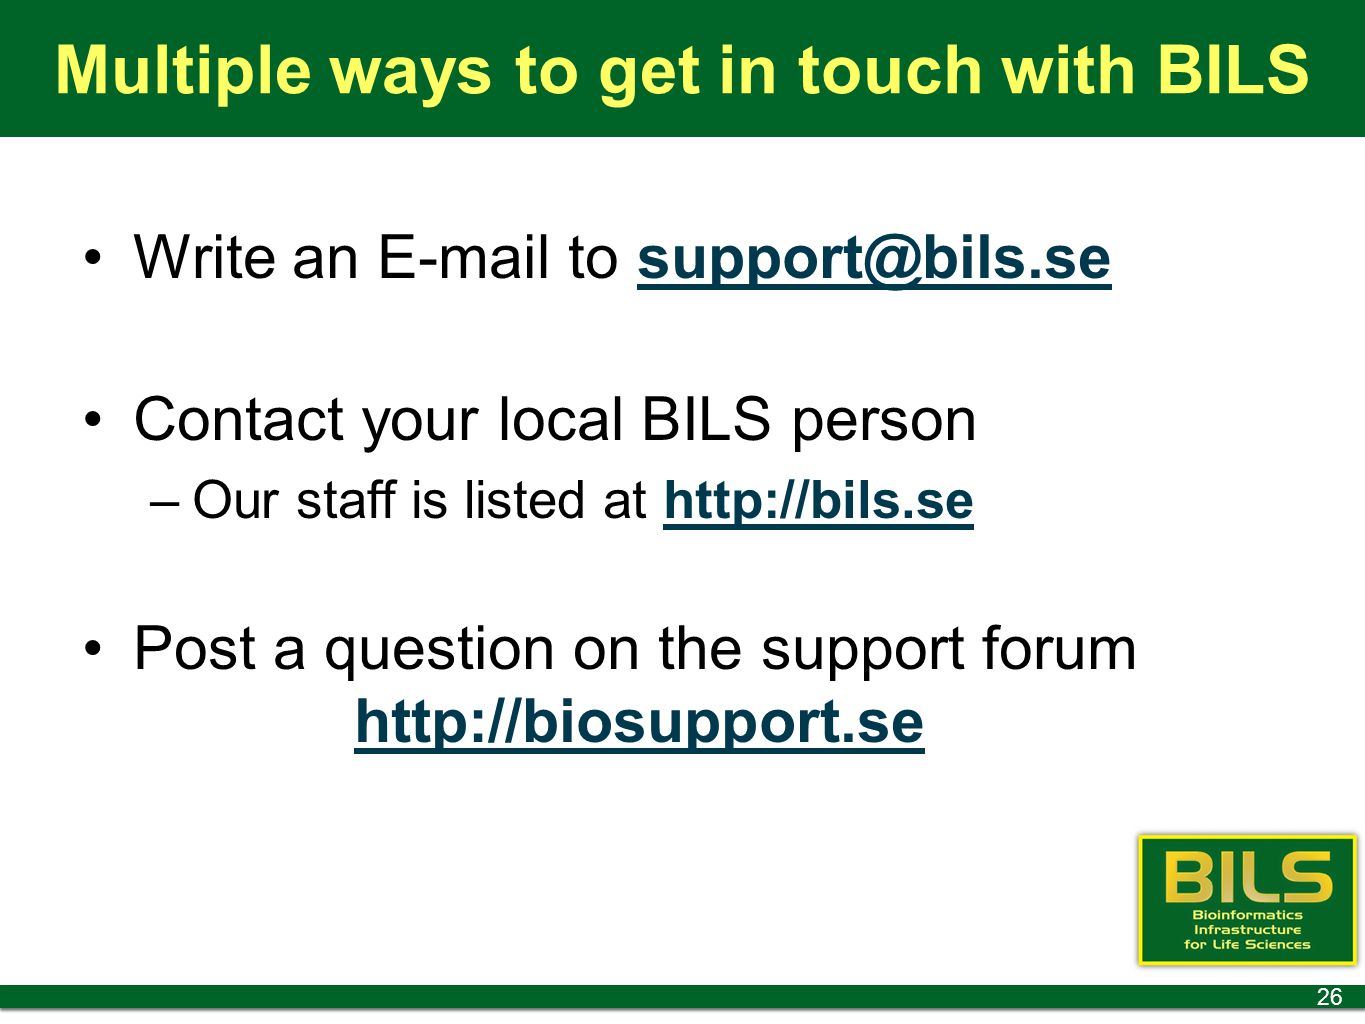 Multiple ways to get in touch with BILS